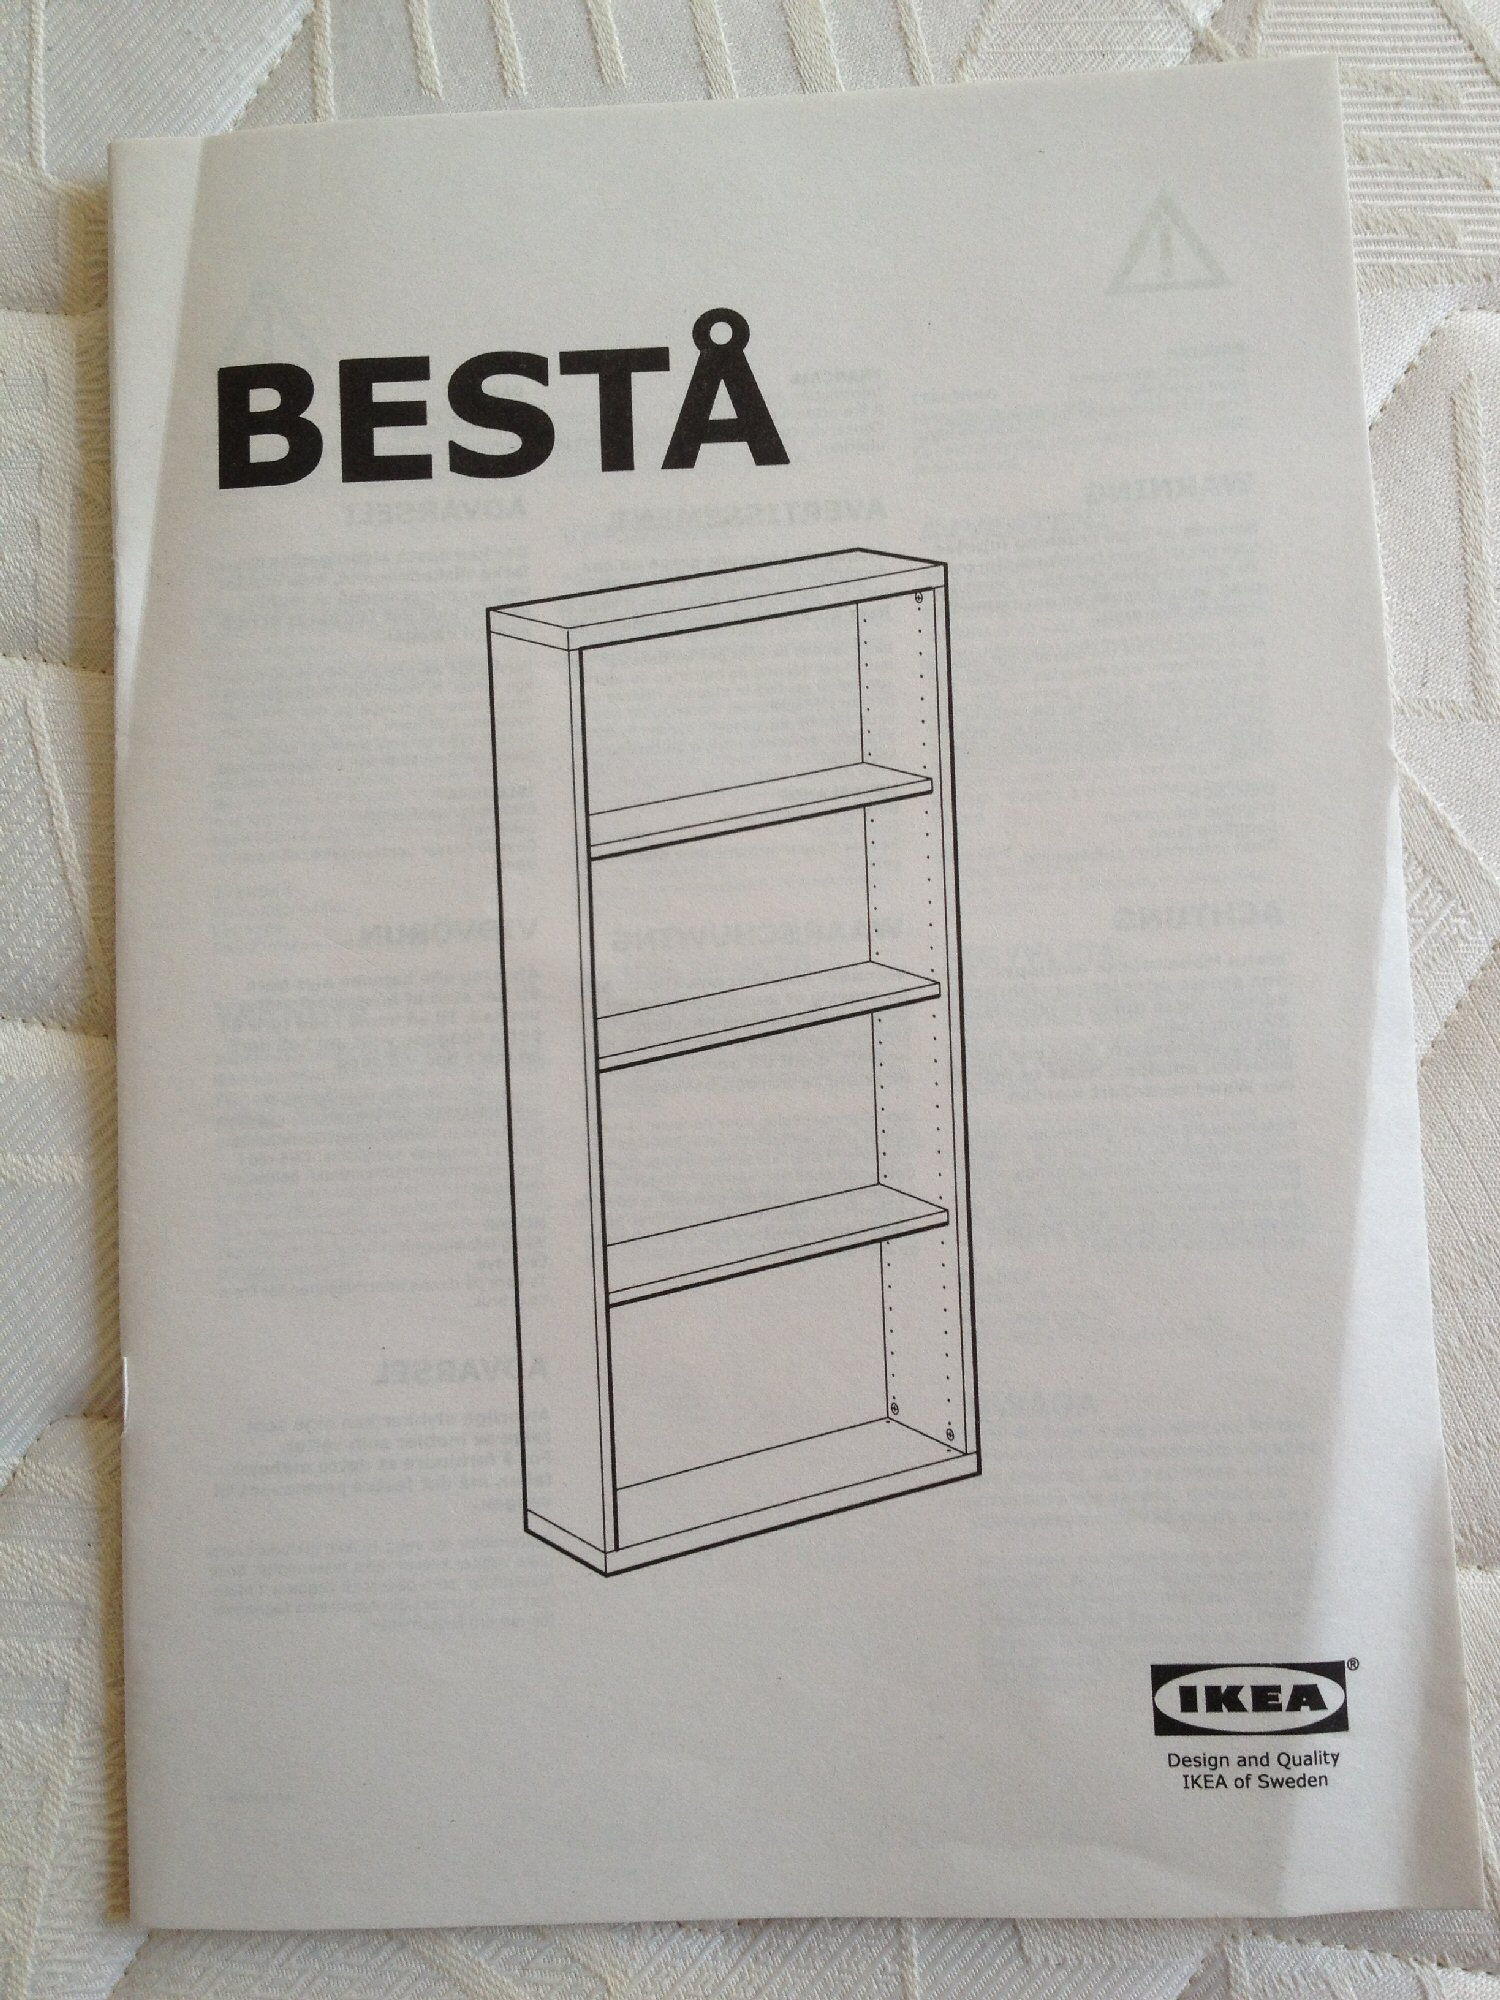 ikea besta regal dmgpage game boy blog. Black Bedroom Furniture Sets. Home Design Ideas